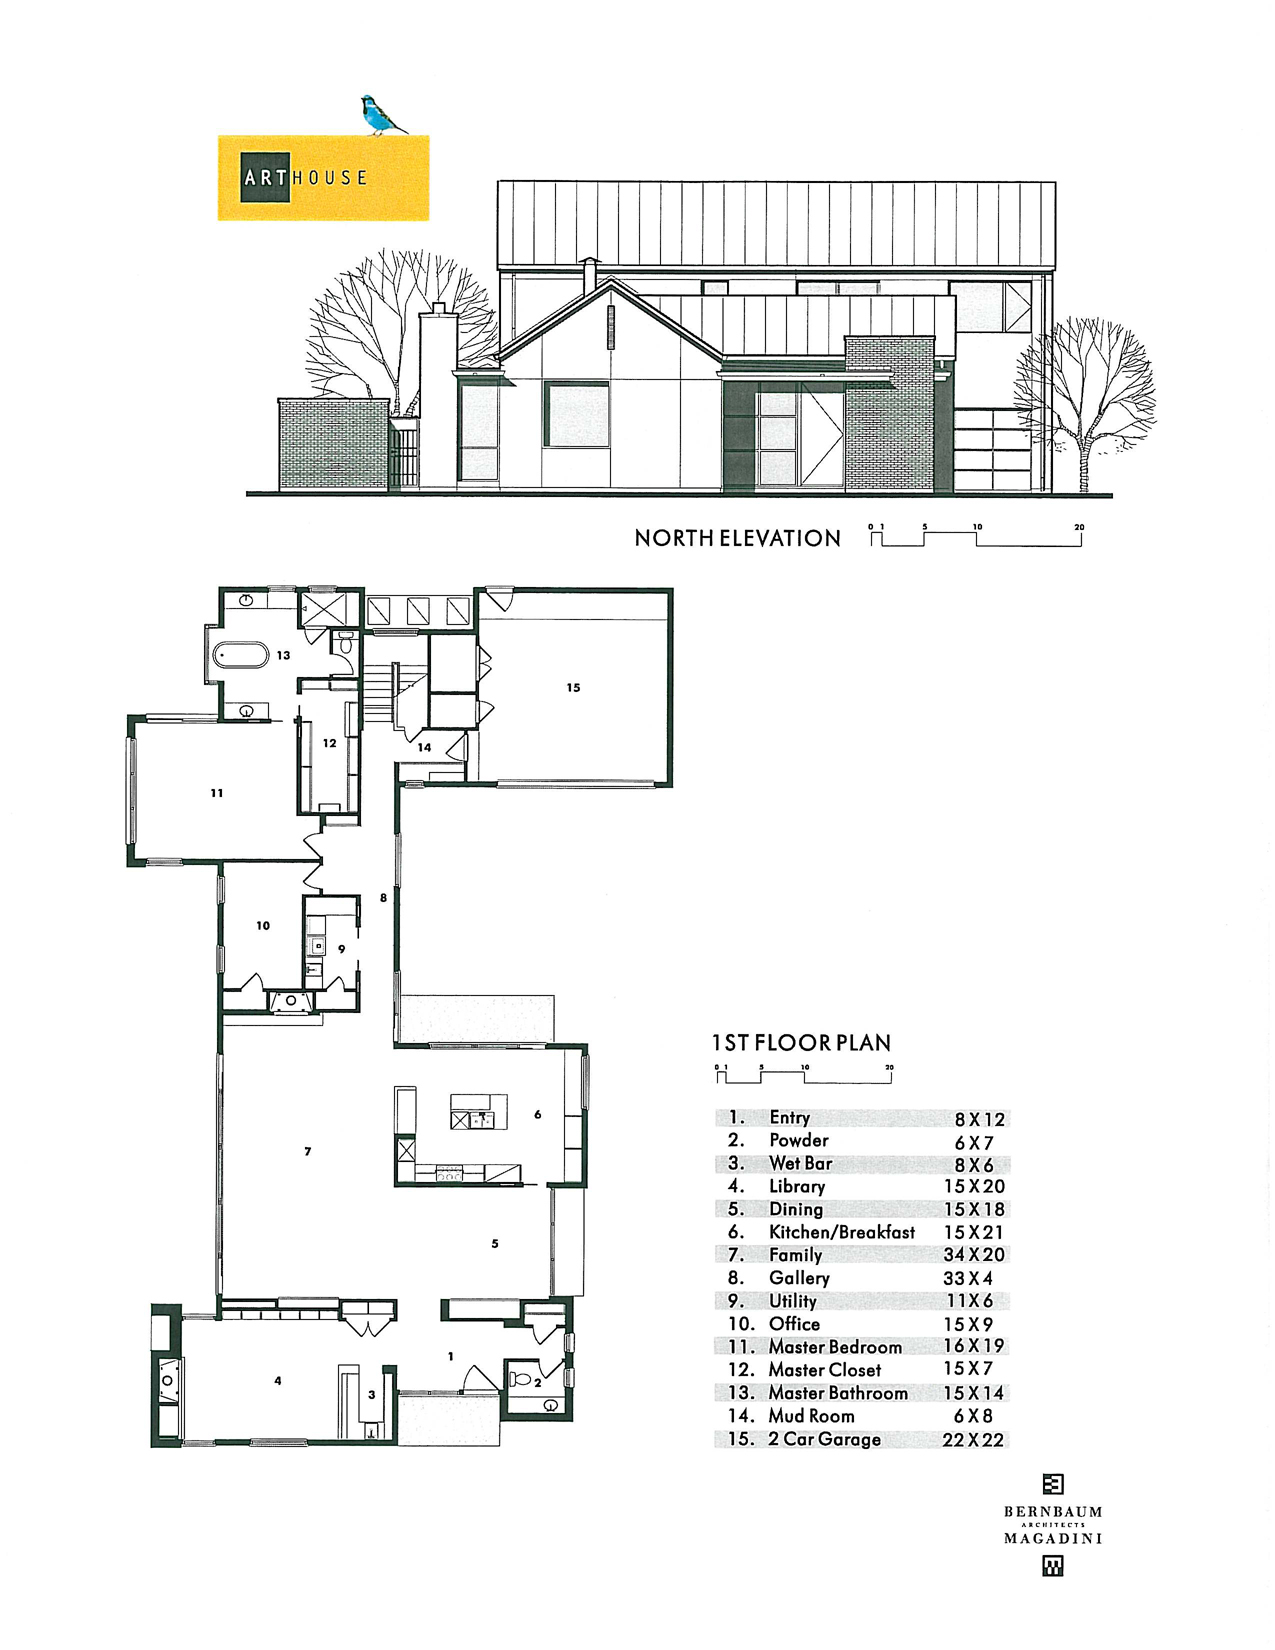 family guy house floor plan viewing gallery guy house floor plan 2 gallery image and wallpaper